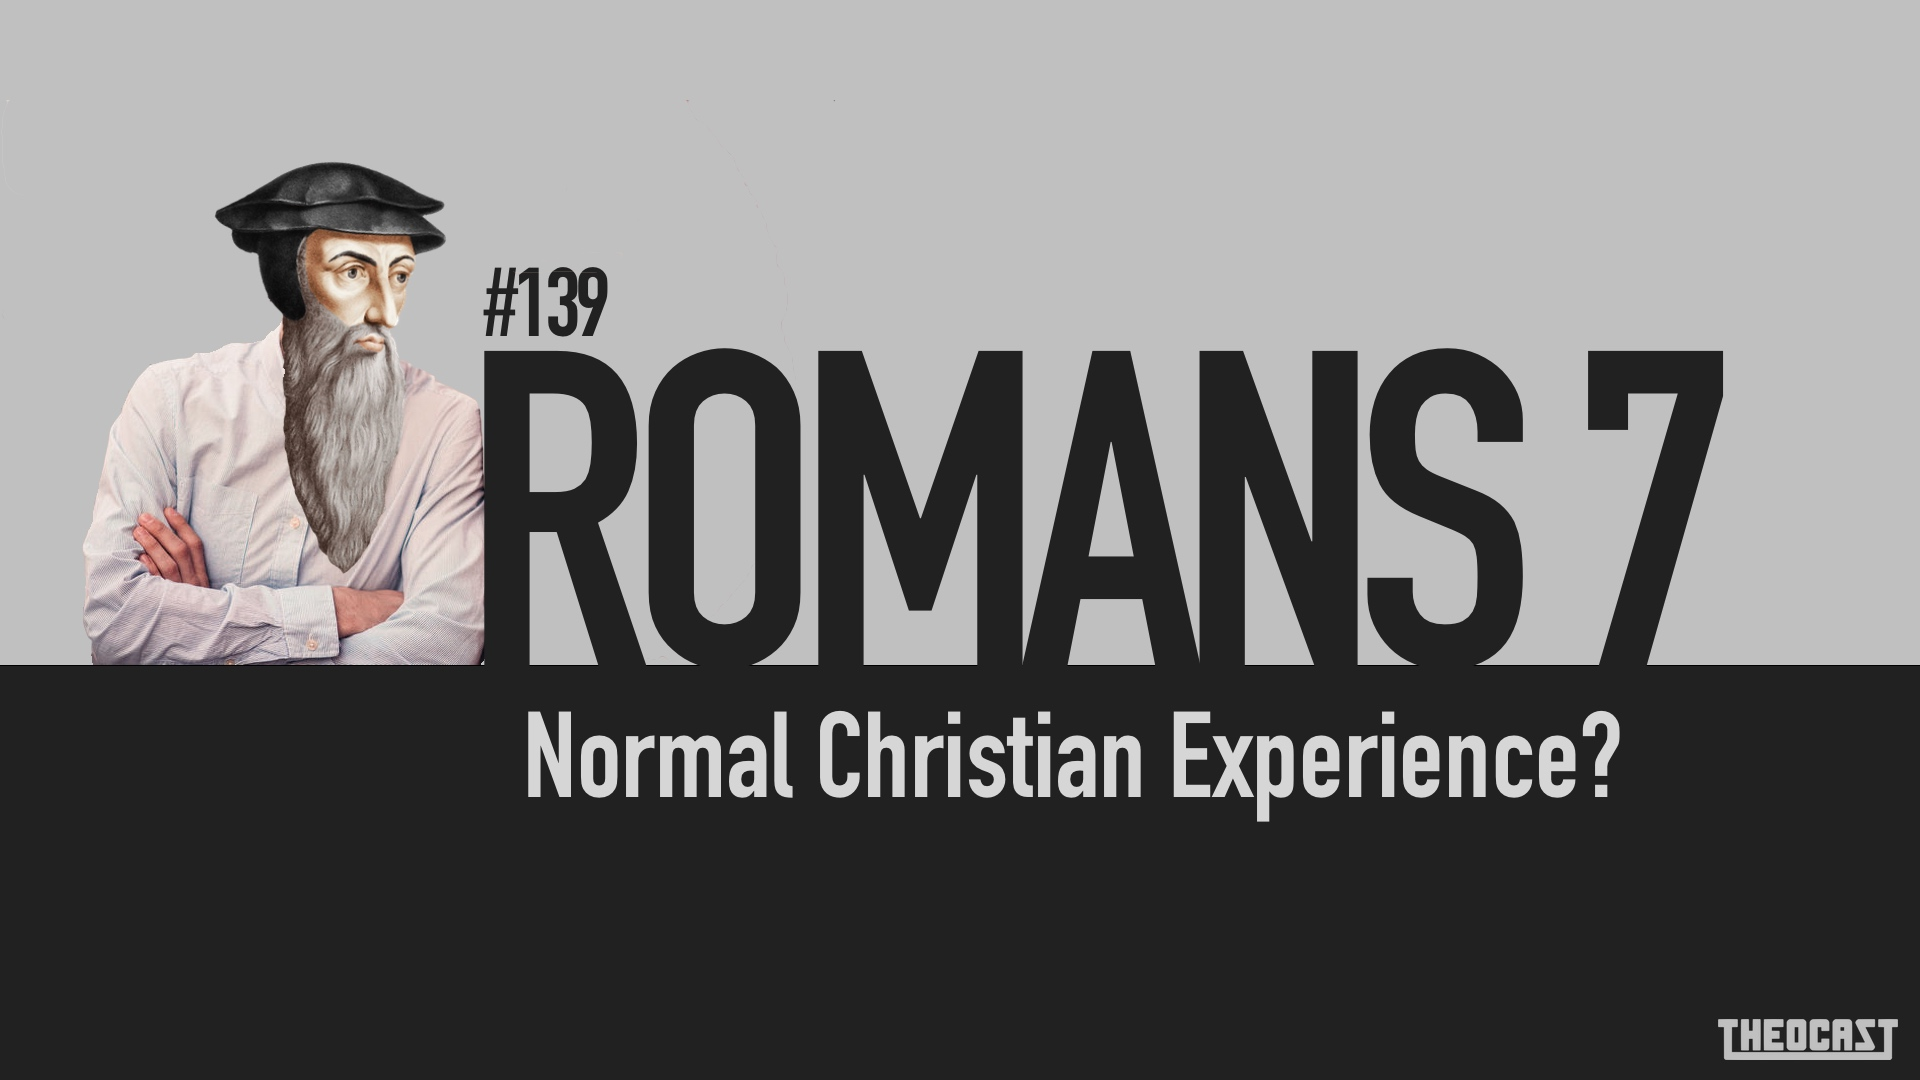 #139 Romans 7: Normal Christian Experience?